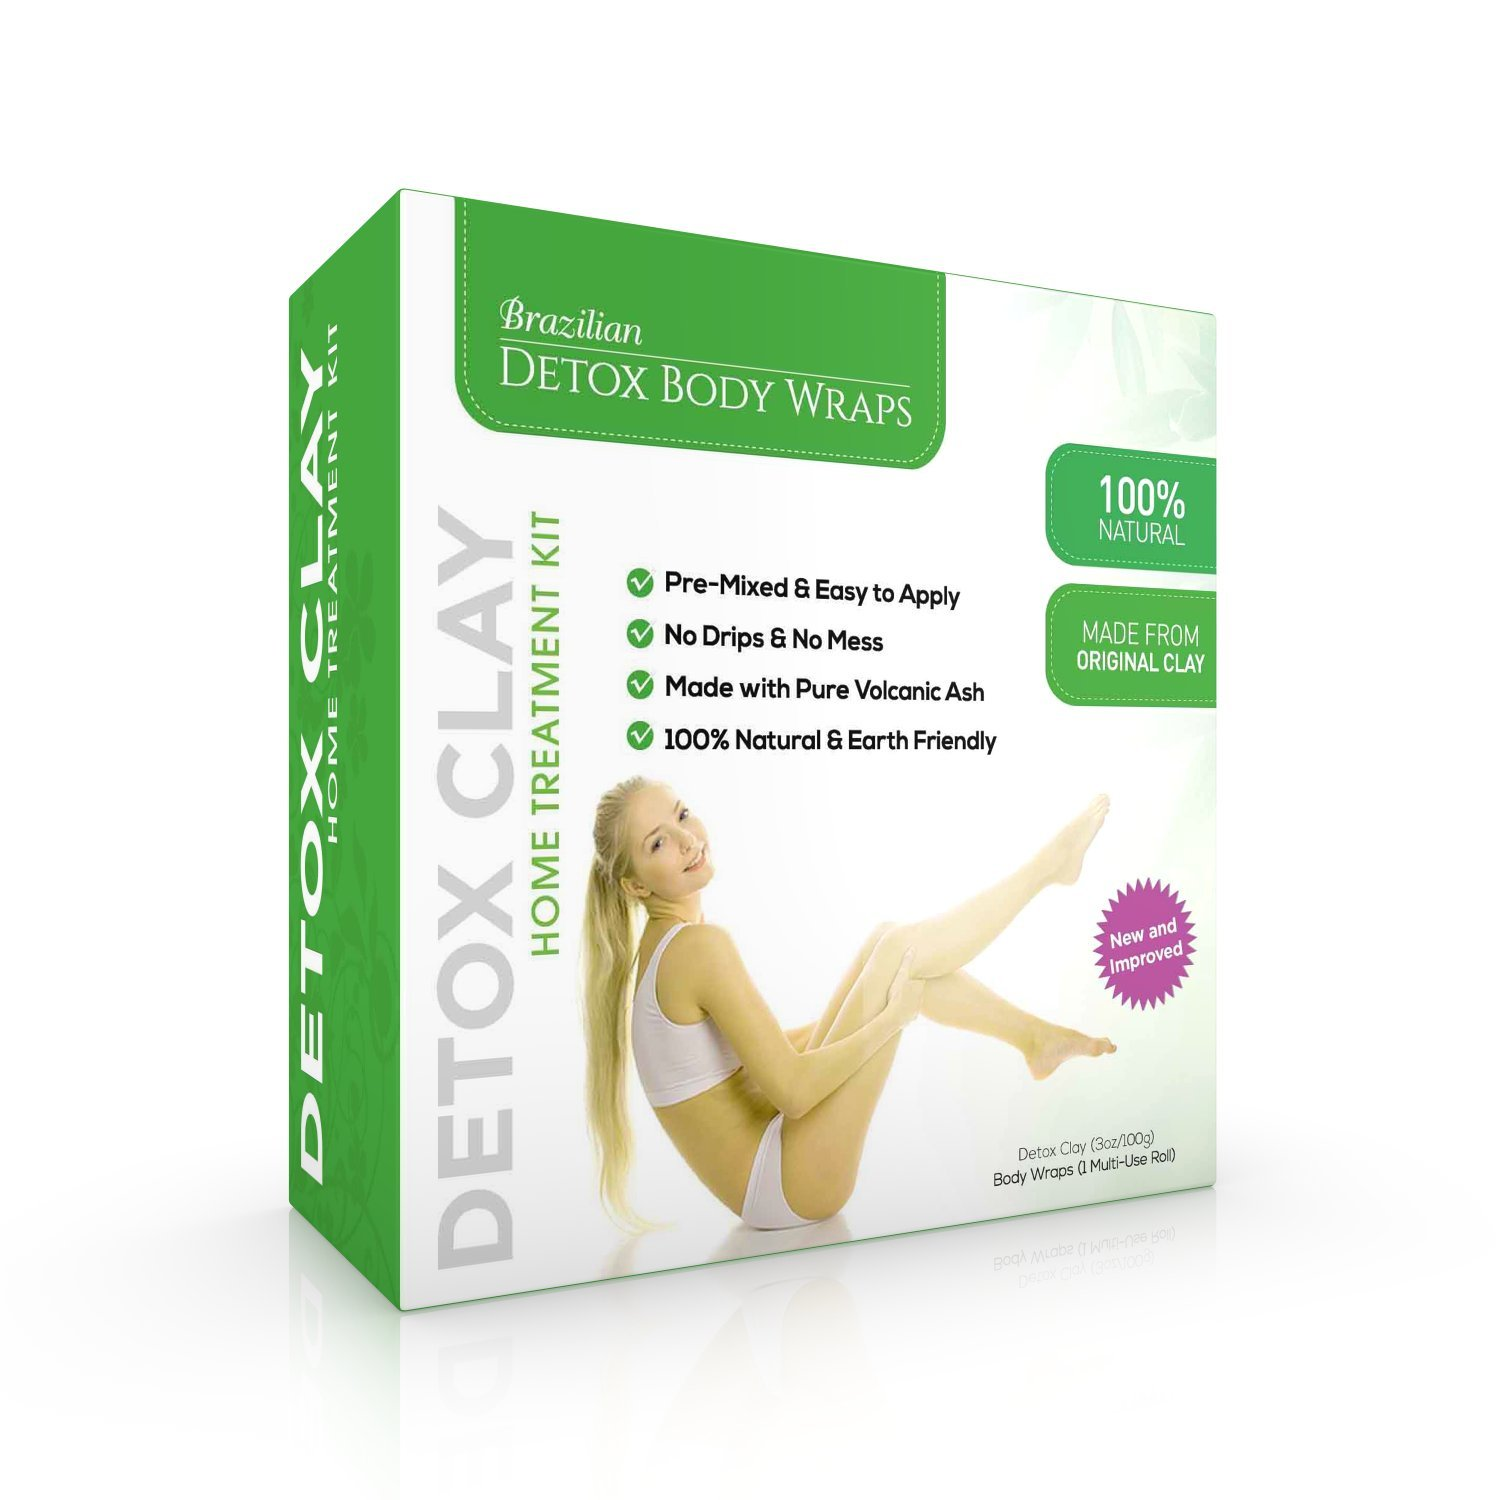 Brazilian Detox Clay Body Wraps (10-Applications) Slimming Home Spa Treatment for Cellulite, Weight Loss, Stretch Marks | Natural, Purifying Detoxifier for Smooth, Toned Skin (10 Applications) by Brazilian Slimming Tea